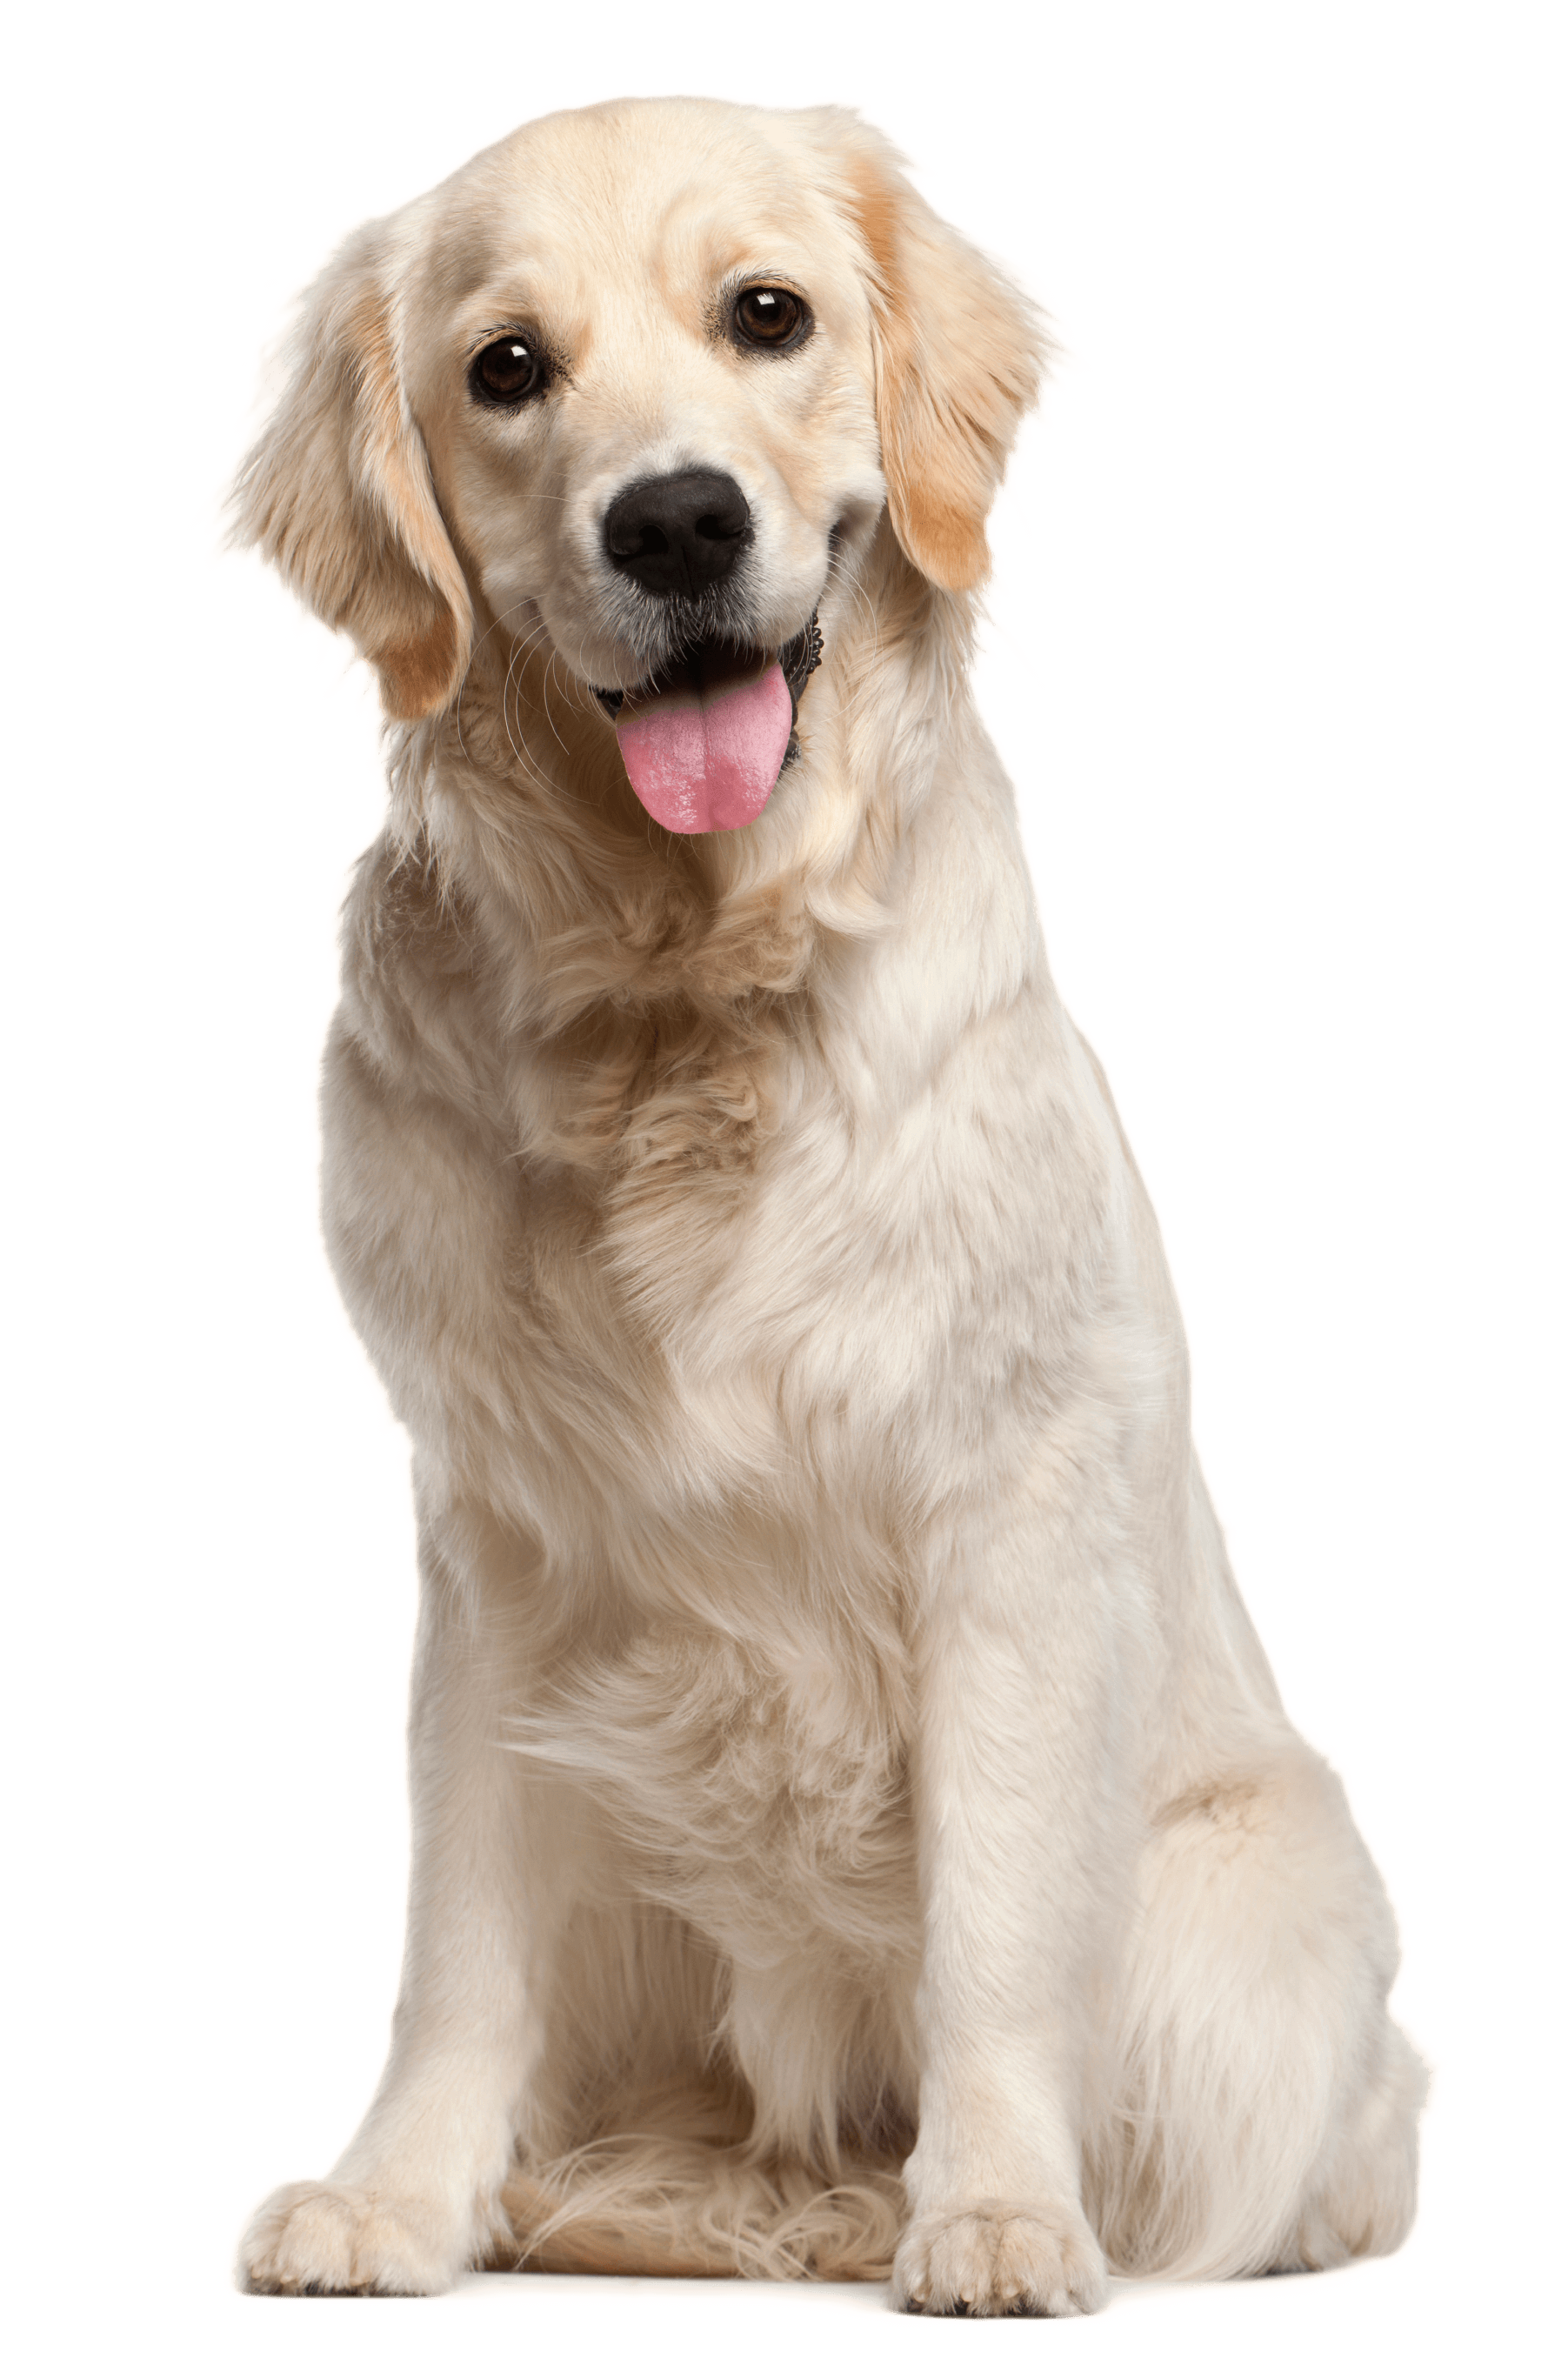 Dog image puppy pictures. Dogs png clipart royalty free library